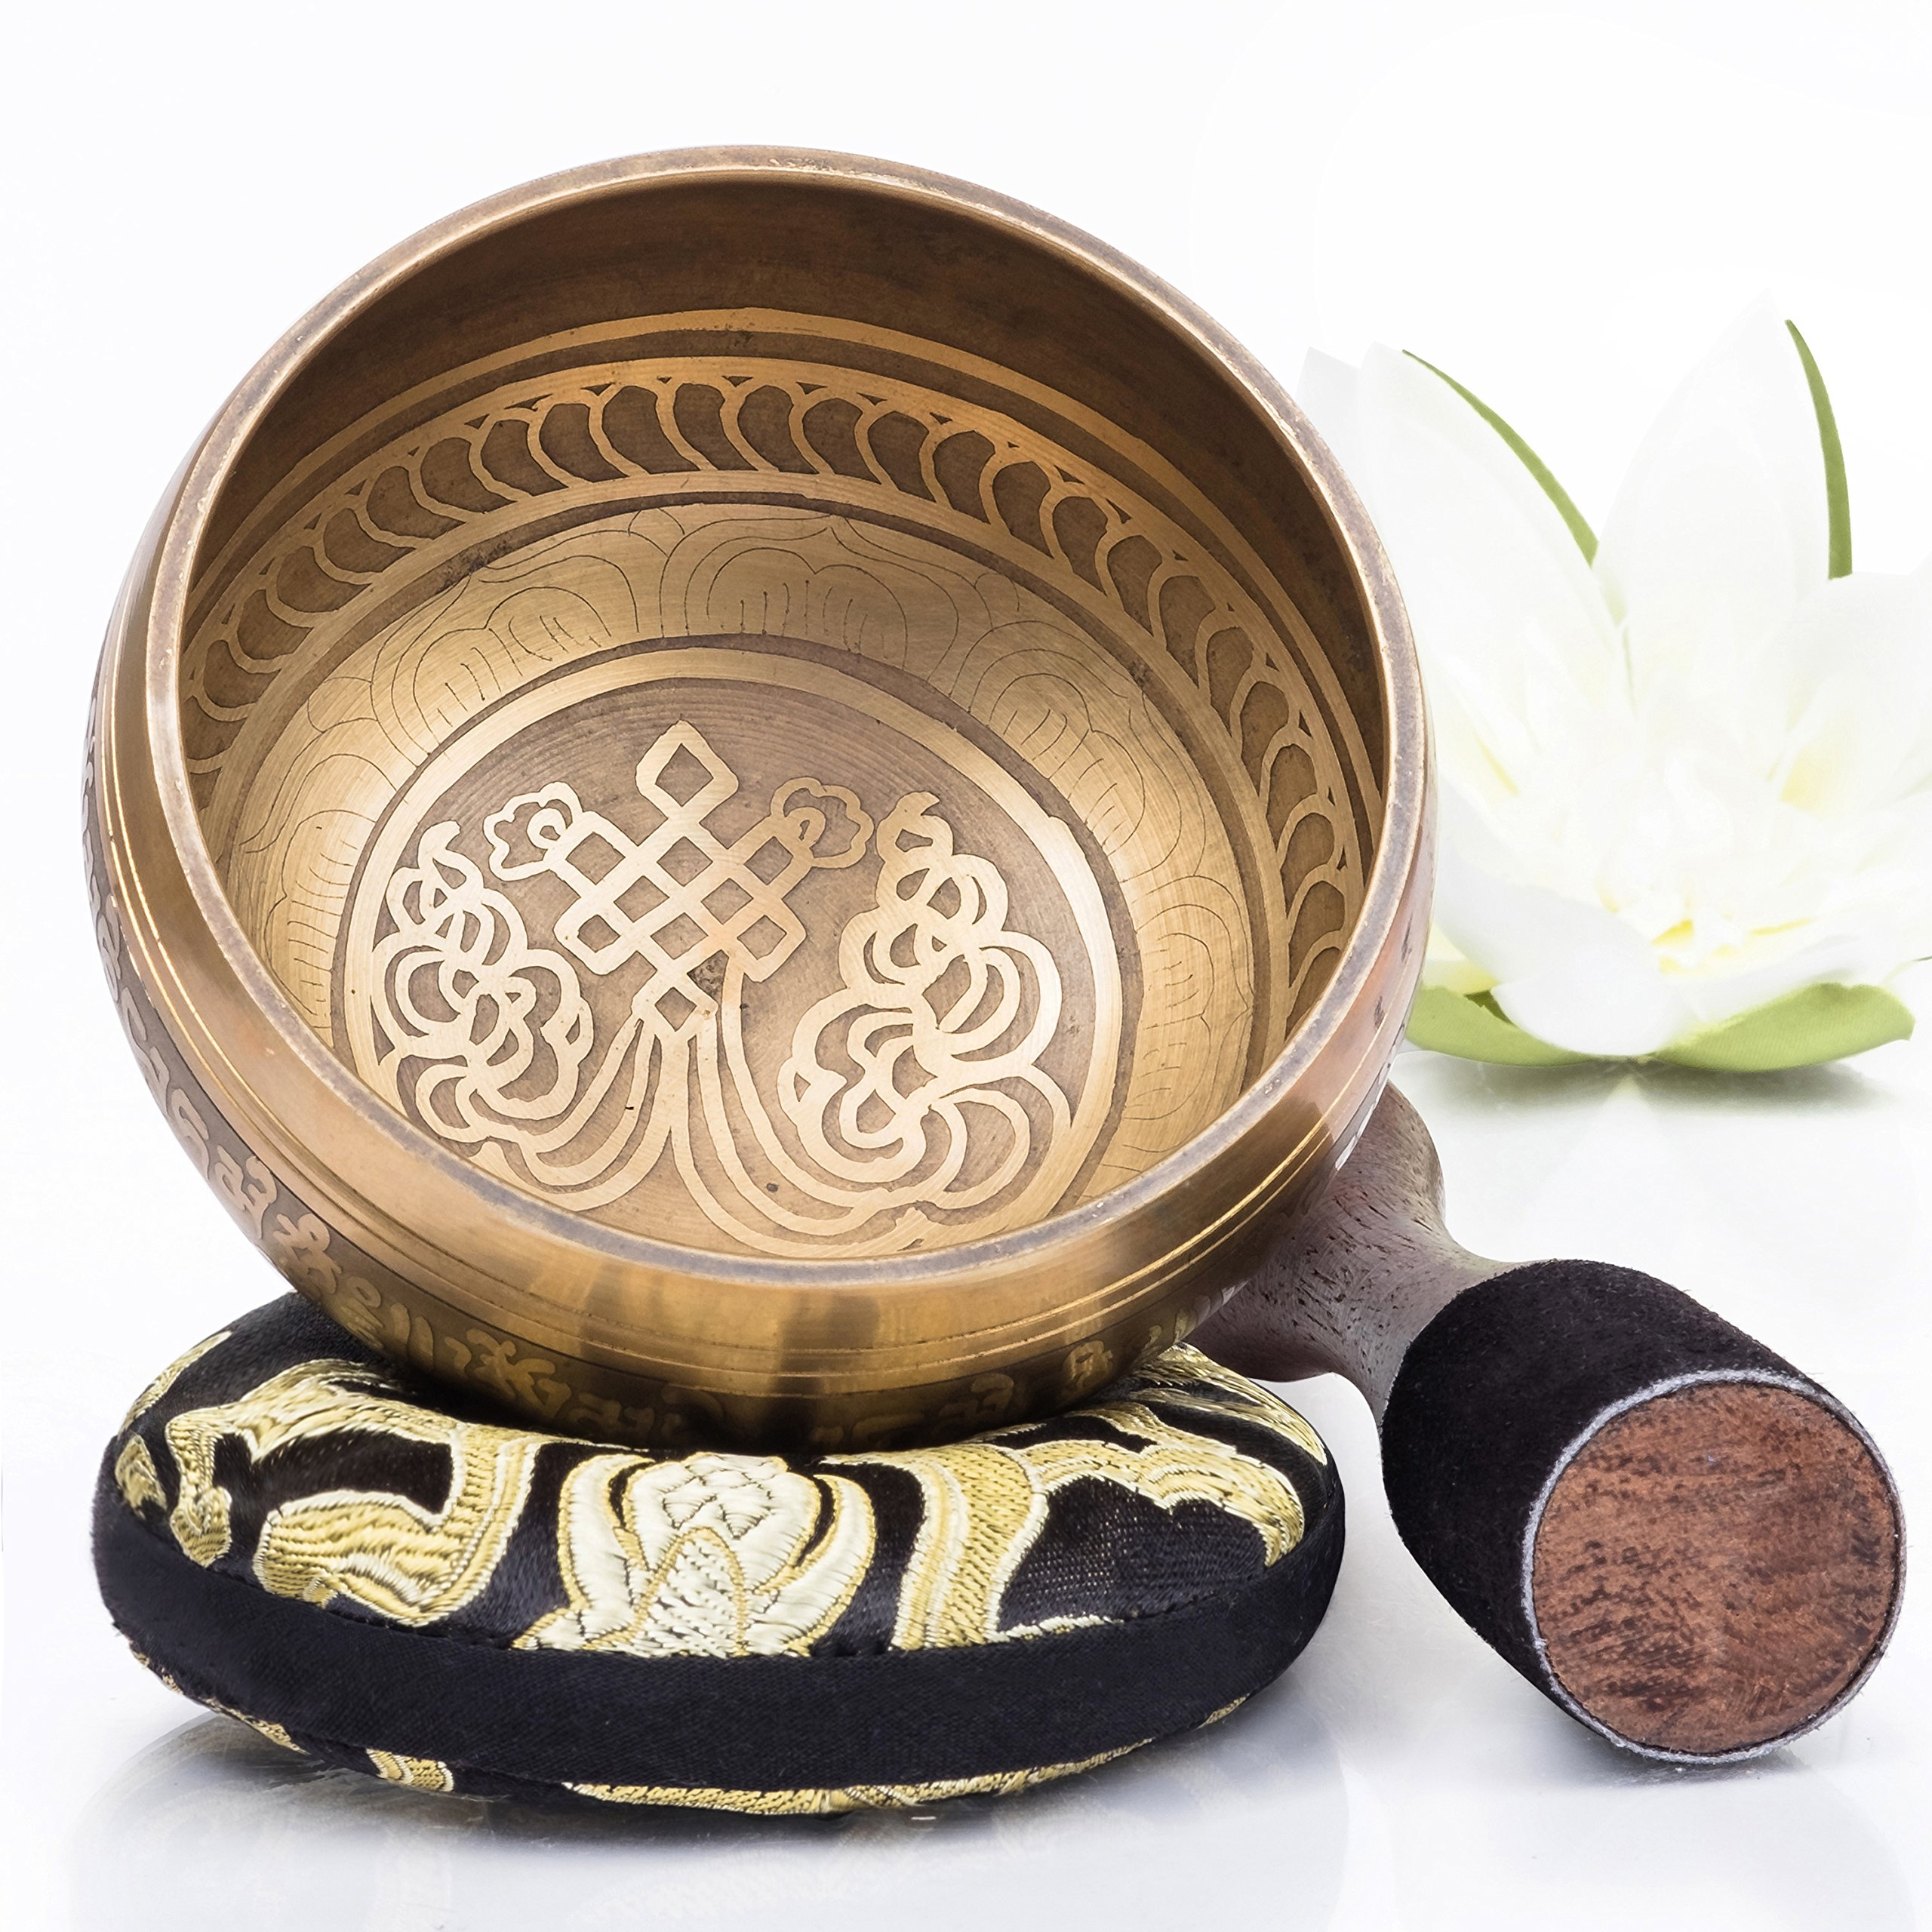 Silent Mind ~ Tibetan Singing Bowl Set ~ Bronze Mantra Design ~ With Dual Surface Mallet and Silk Cushion ~ Promotes Peace, Chakra Healing, and Mindfulness ~ Exquisite Gift by Silent Mind